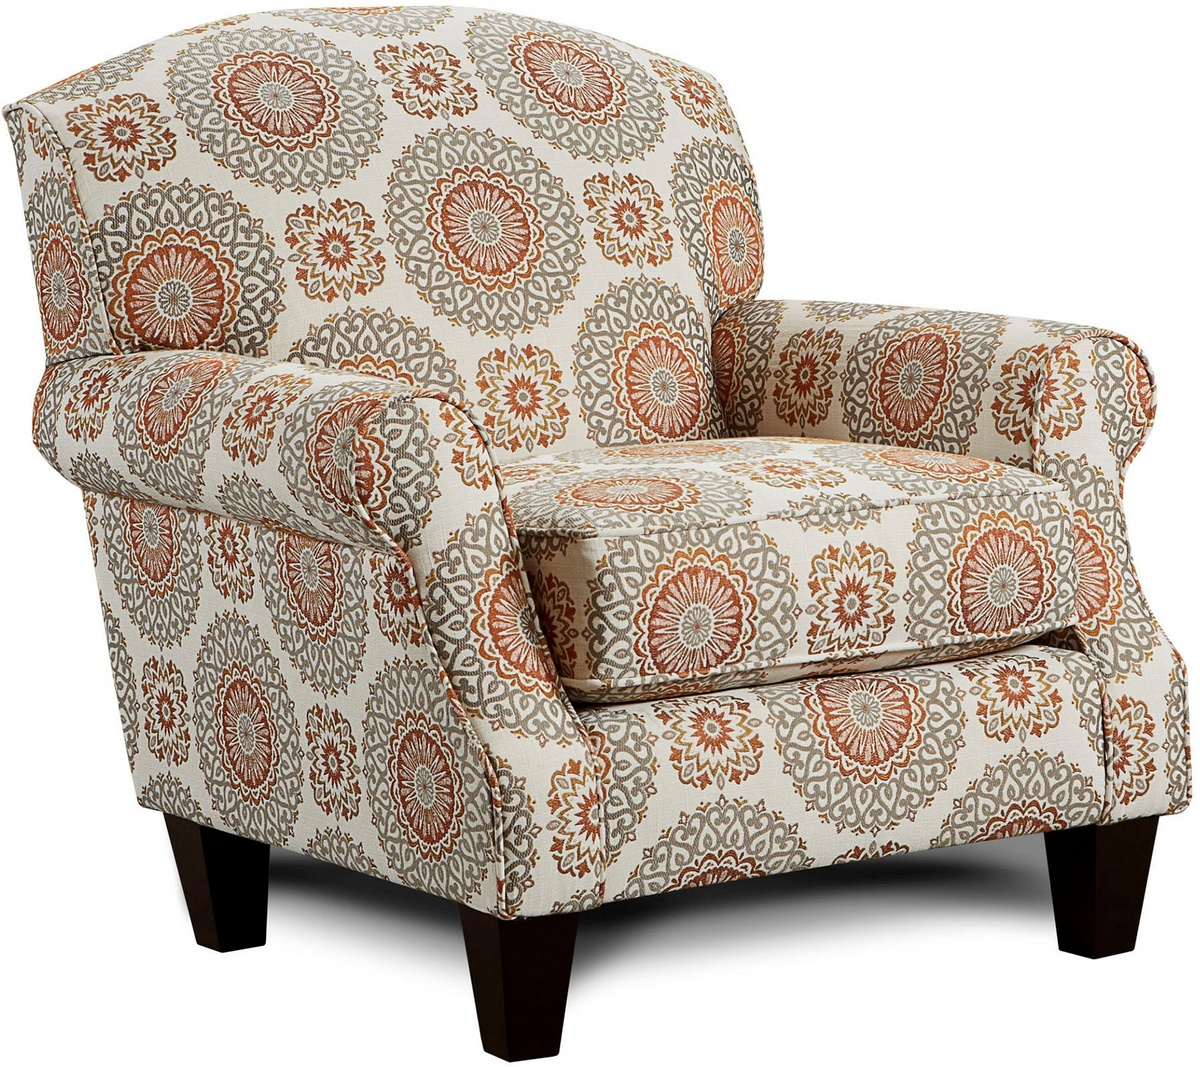 Chelsea Home Brinley Accent Chair Revolution Marmalade Revolution Marmalade